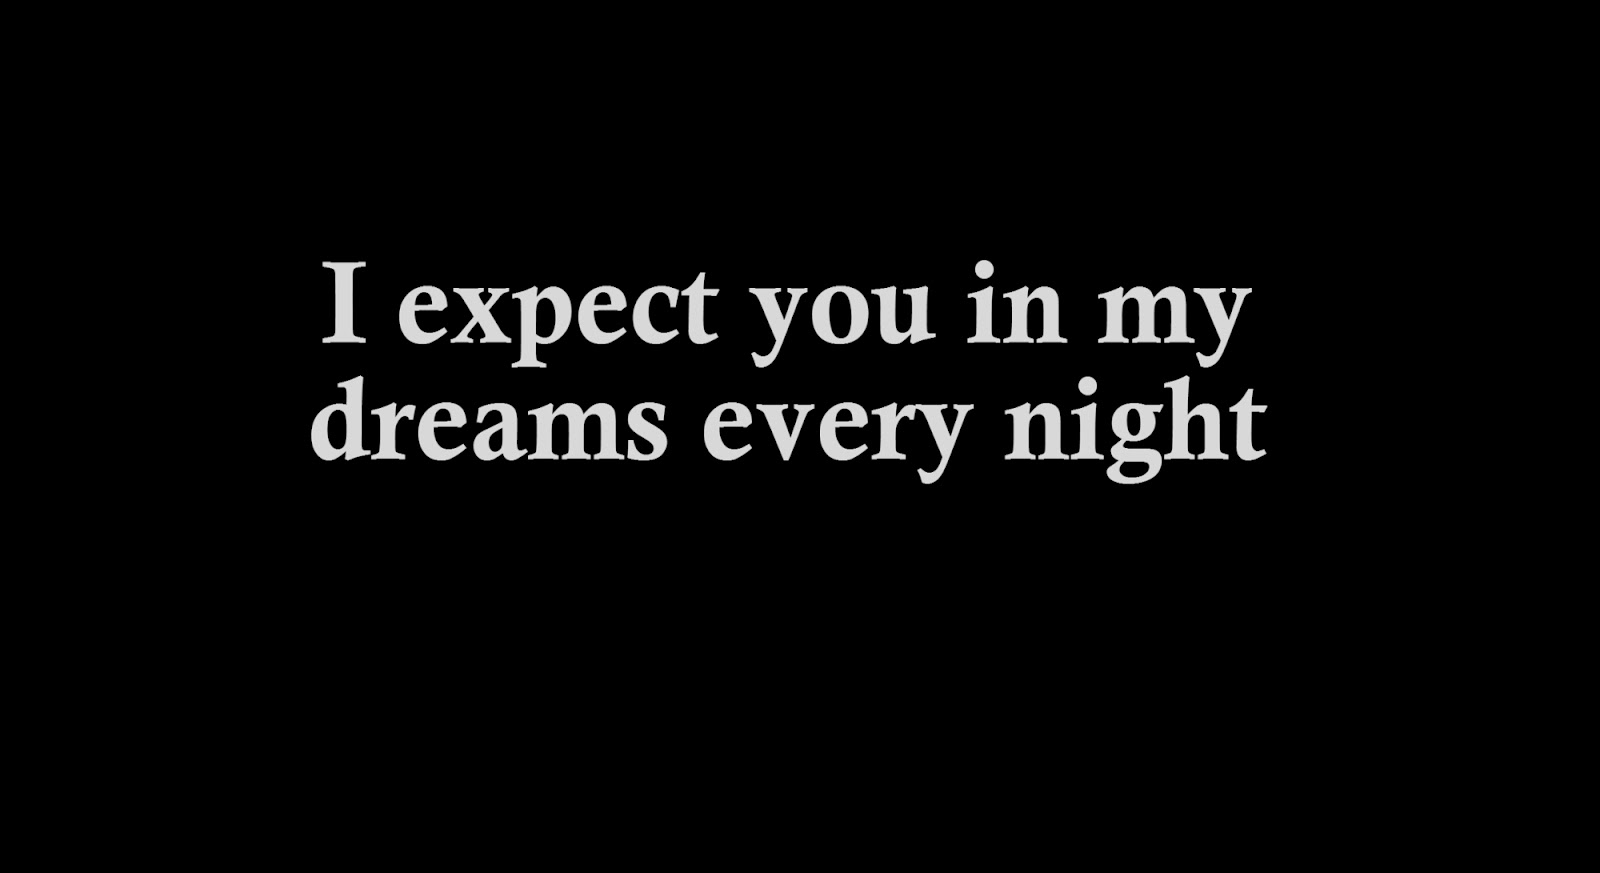 I expect you in my dreams every night